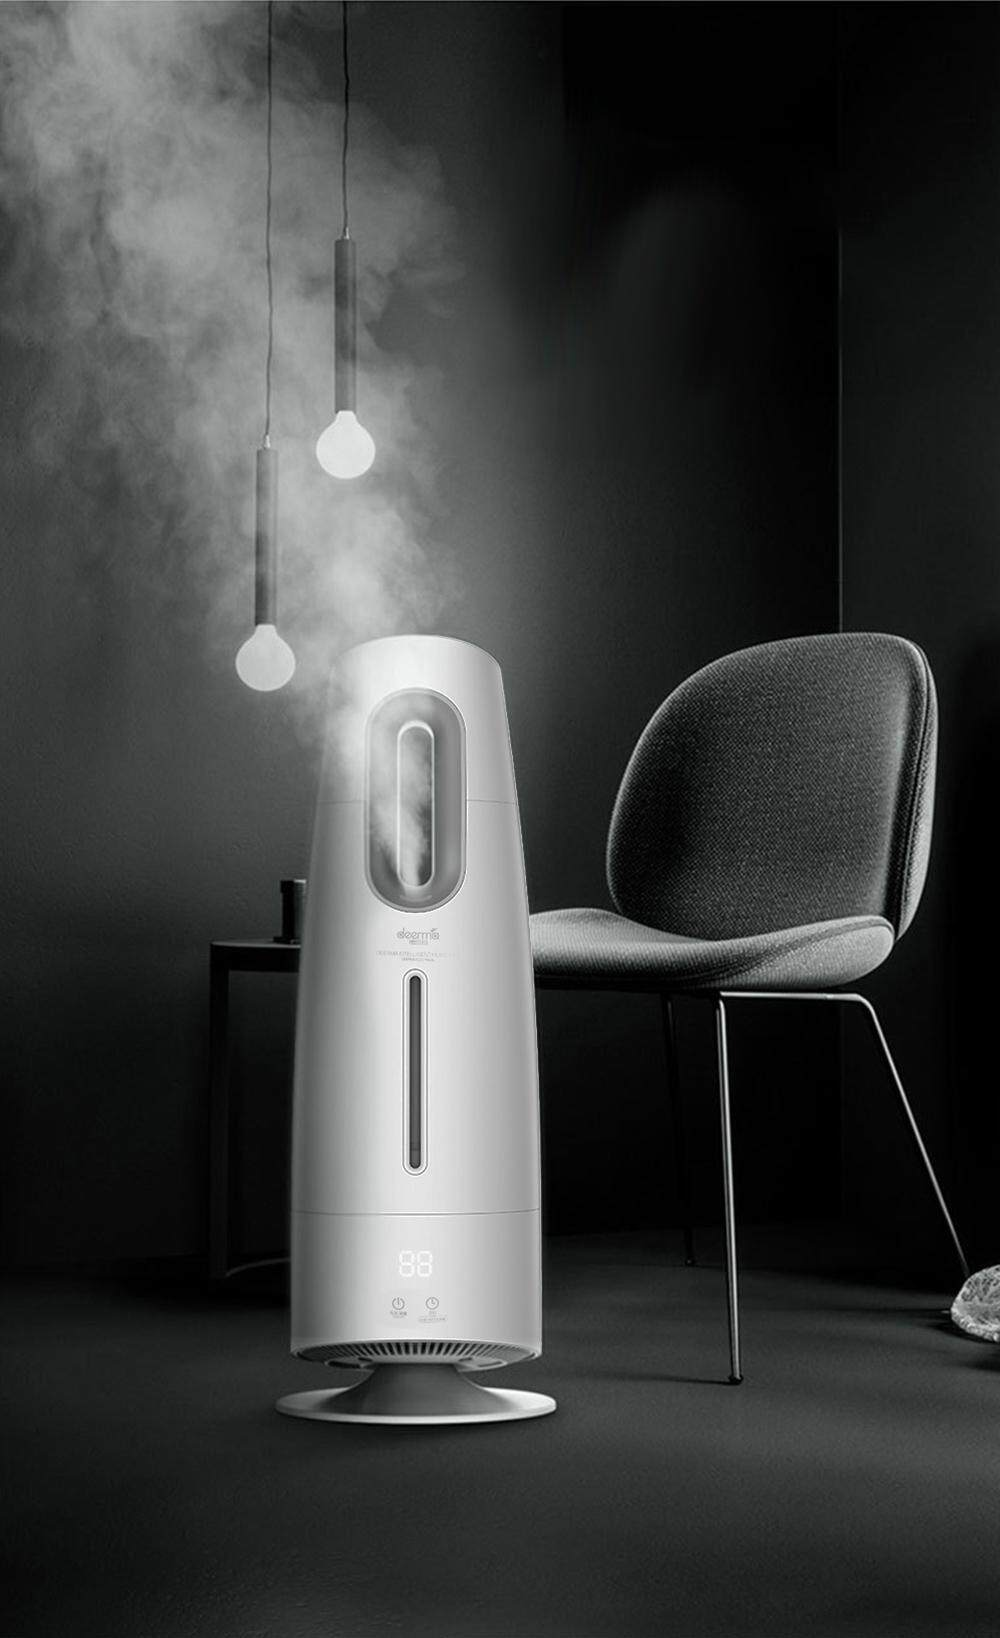 DEERMA DEM - LD700 Mist Humidifier 4L Air Purifying for Air-conditioned Rooms Office